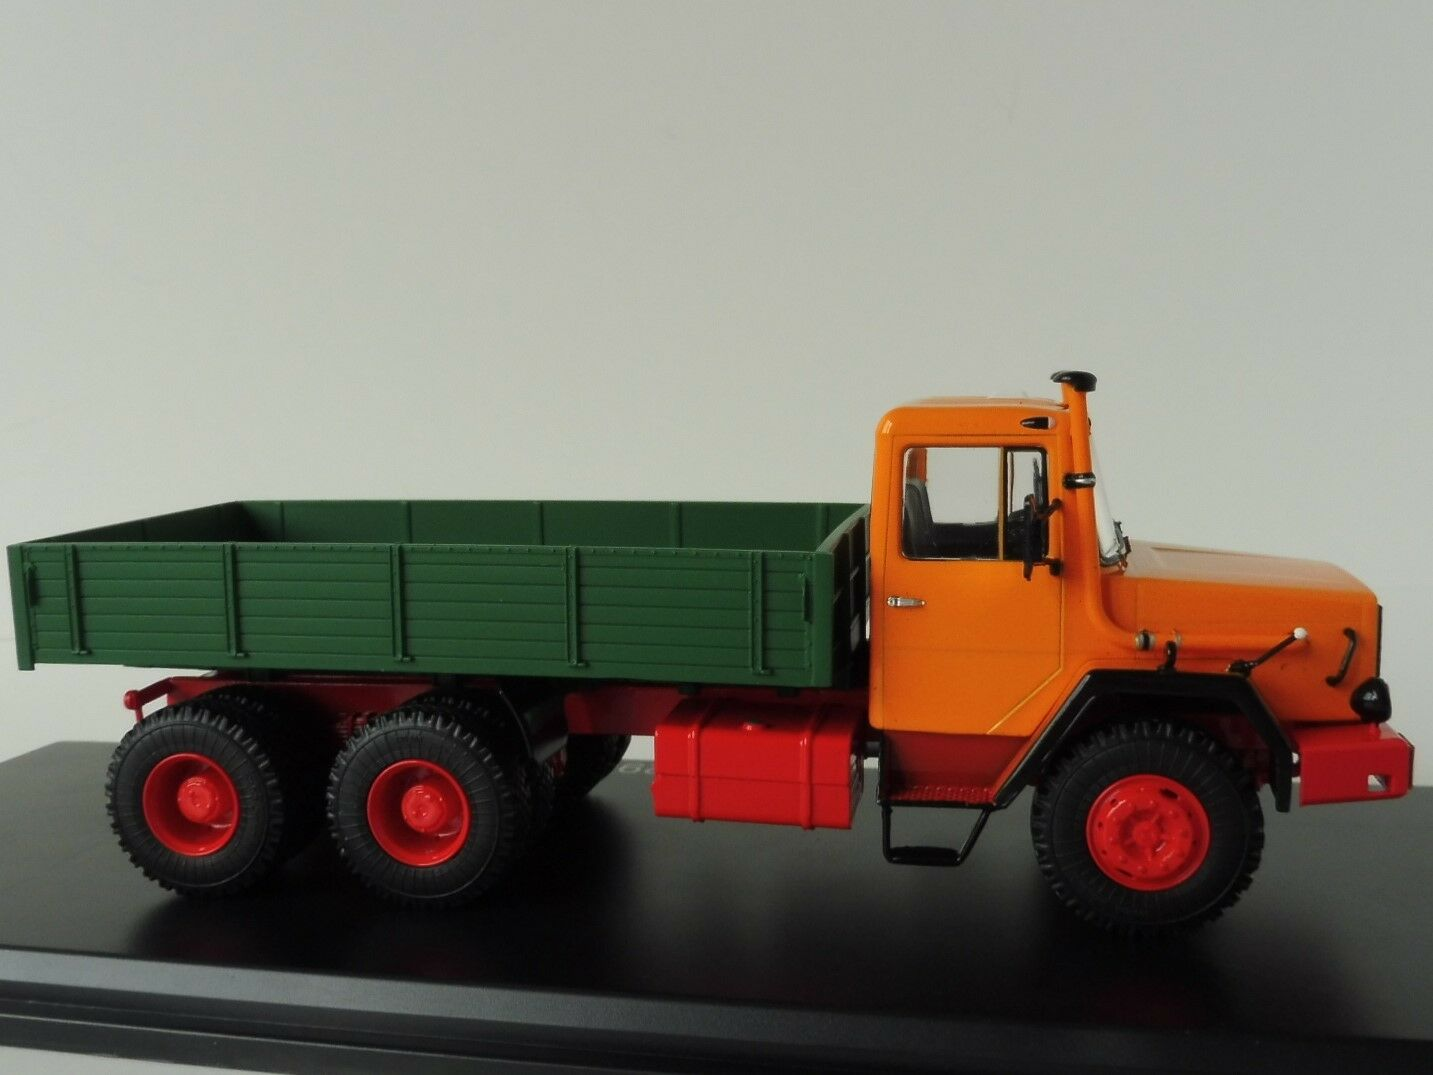 Magirus 290d26l 1 43 start scale models ssm1287 tablillas-camión camión 290